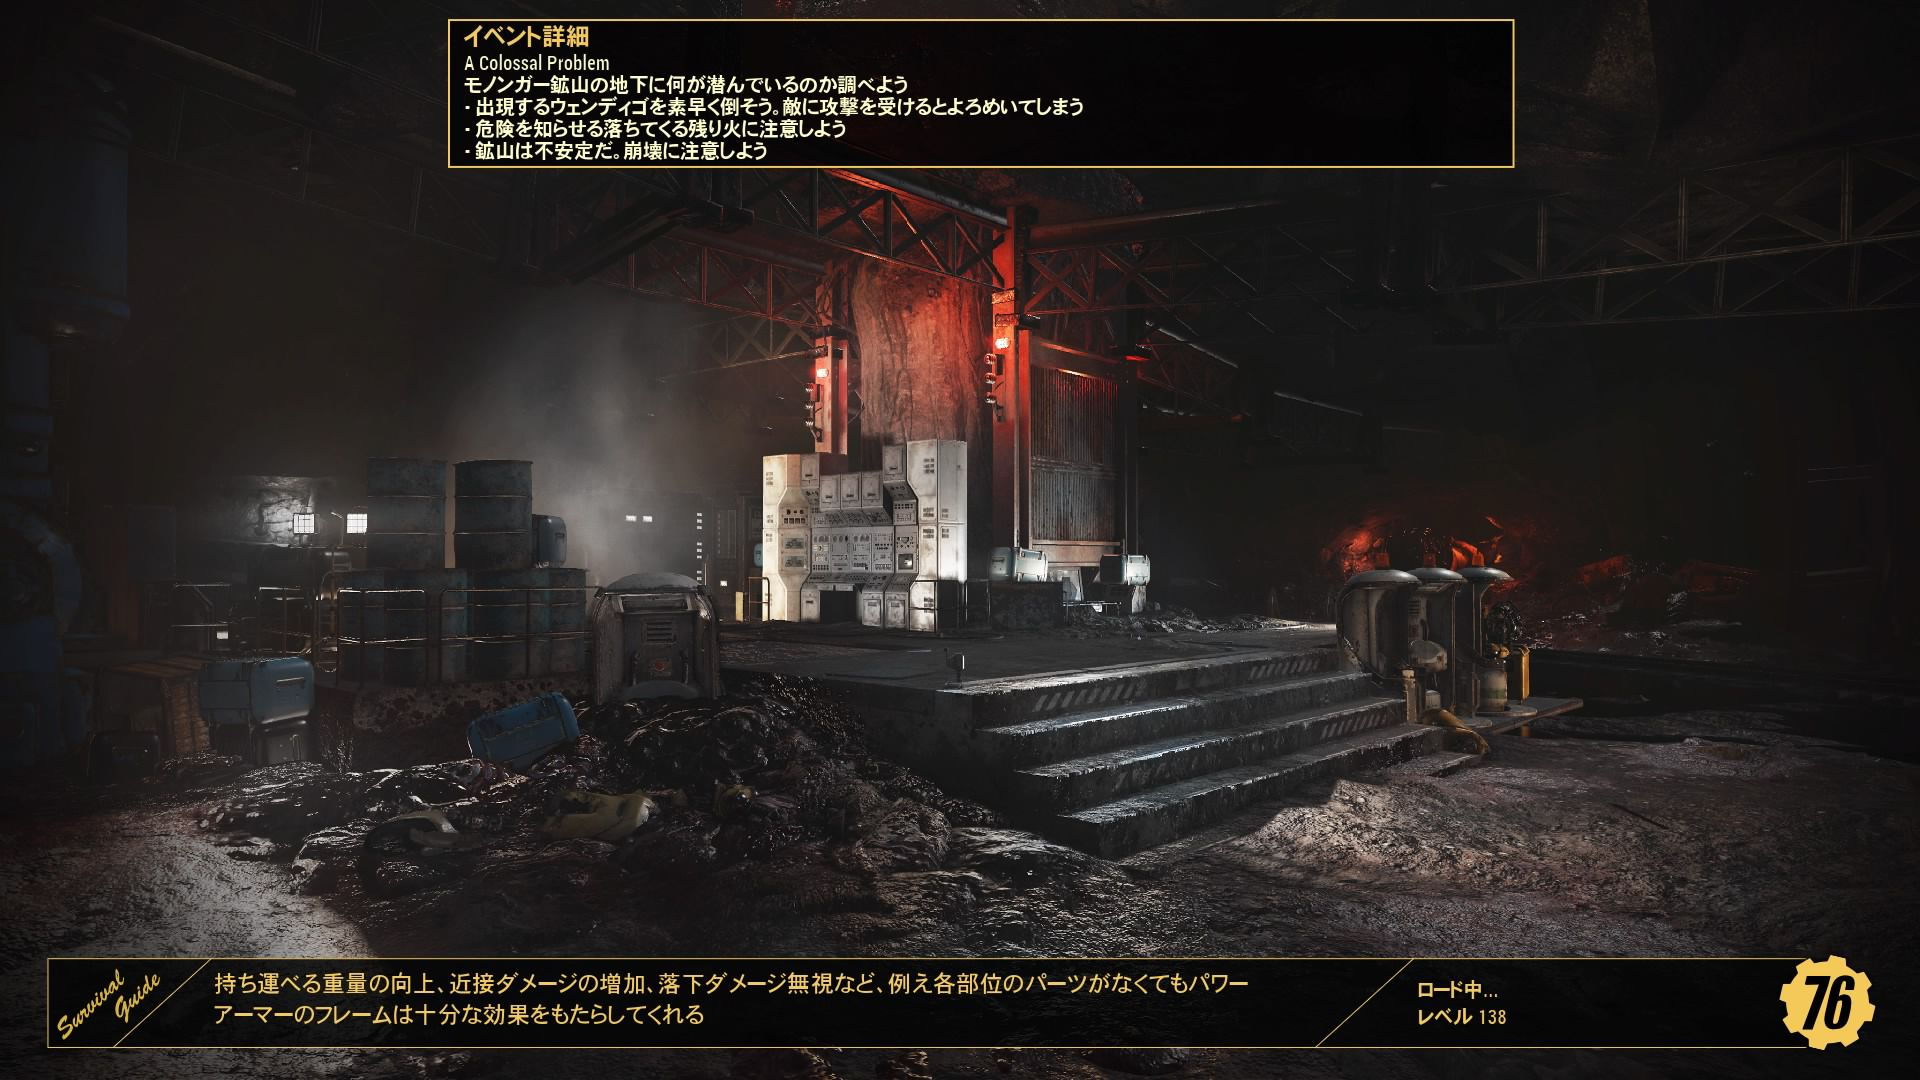 【Fallout76】モノンガー鉱山でウェンディゴ・コロッサスと対決!「Event:A Colossal Problem」参加してきた!